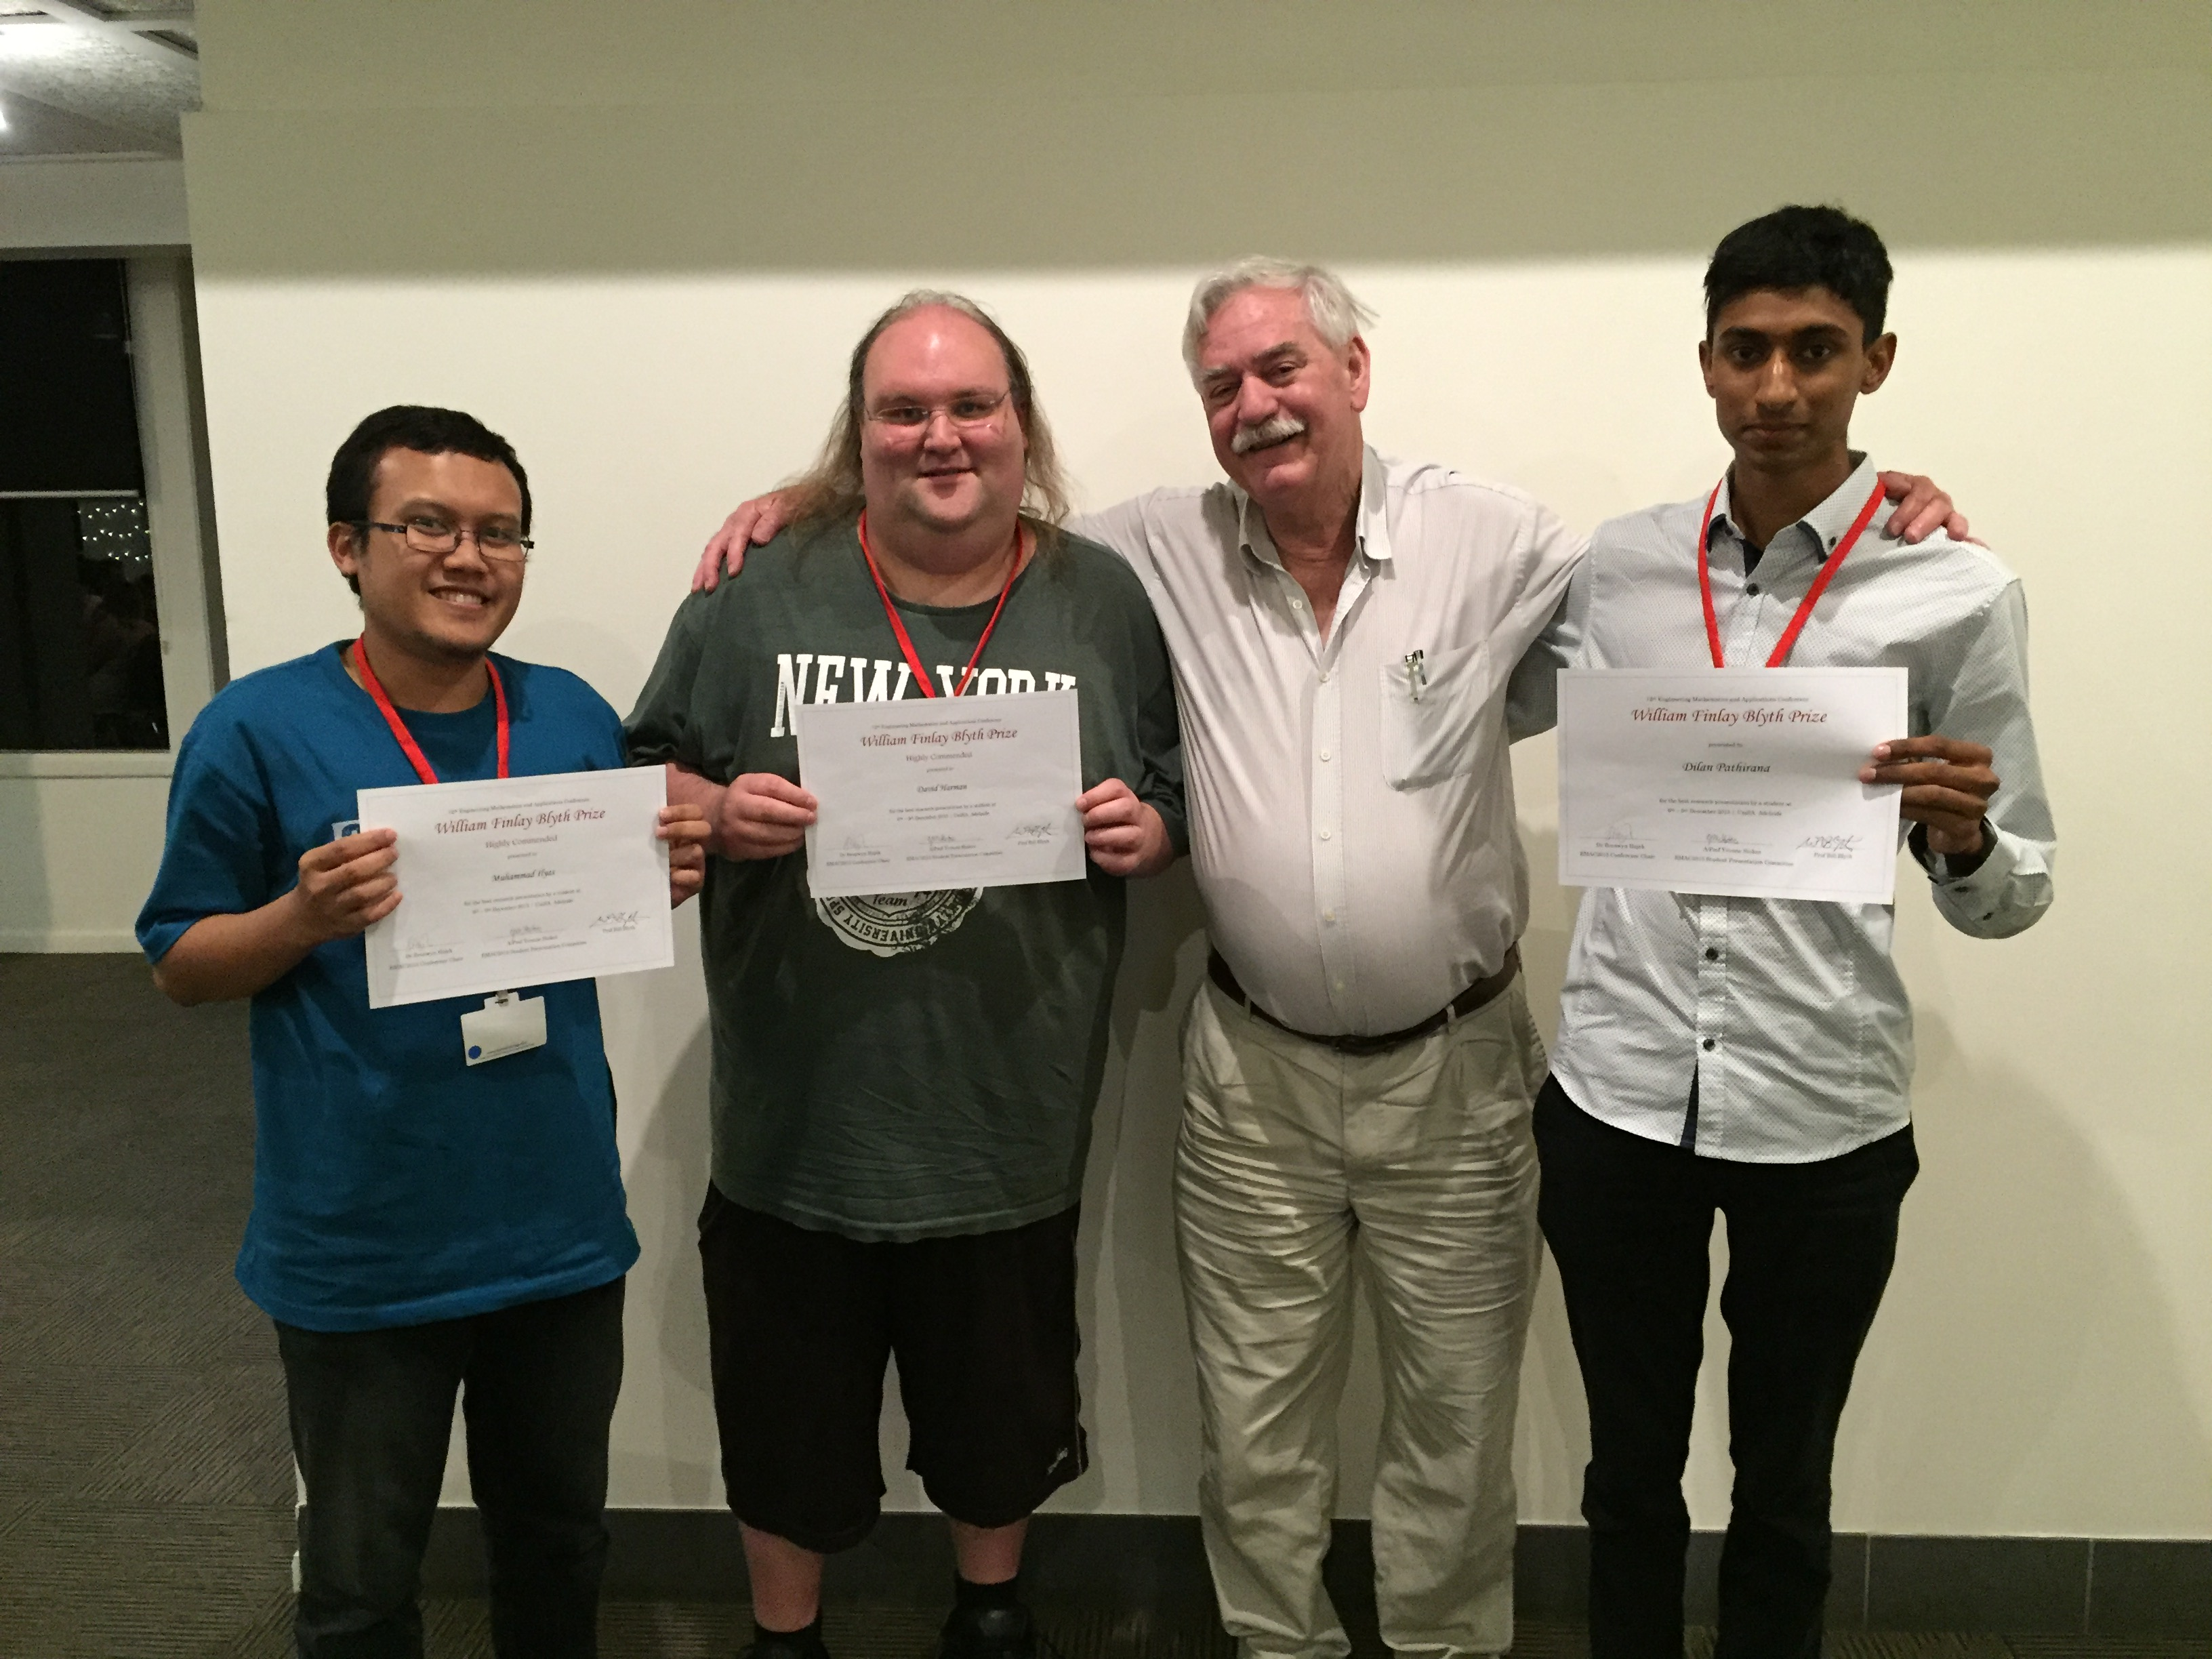 Student prize winners, Adelaide 2015.